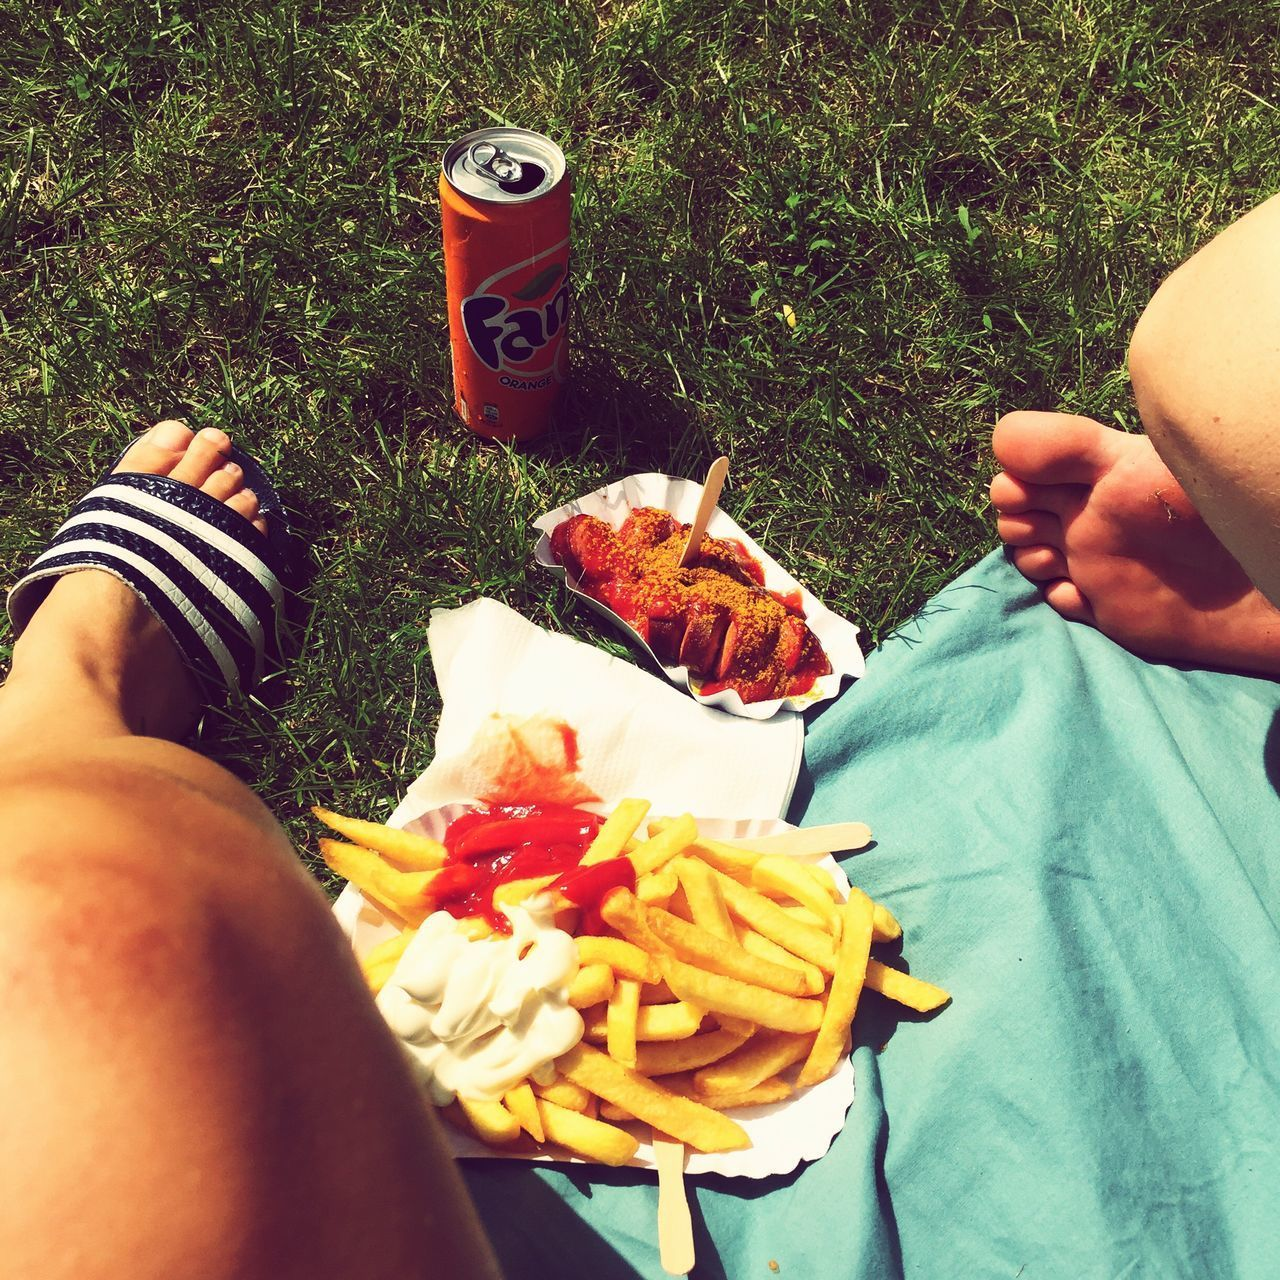 Real People Food And Drink Food Human Body Part Human Leg High Angle View Freshness One Person Men Human Hand Low Section Leisure Activity Day Outdoors Lifestyles Ready-to-eat Close-up People Pommes Currywurst Green Grass Fanta Quality Time